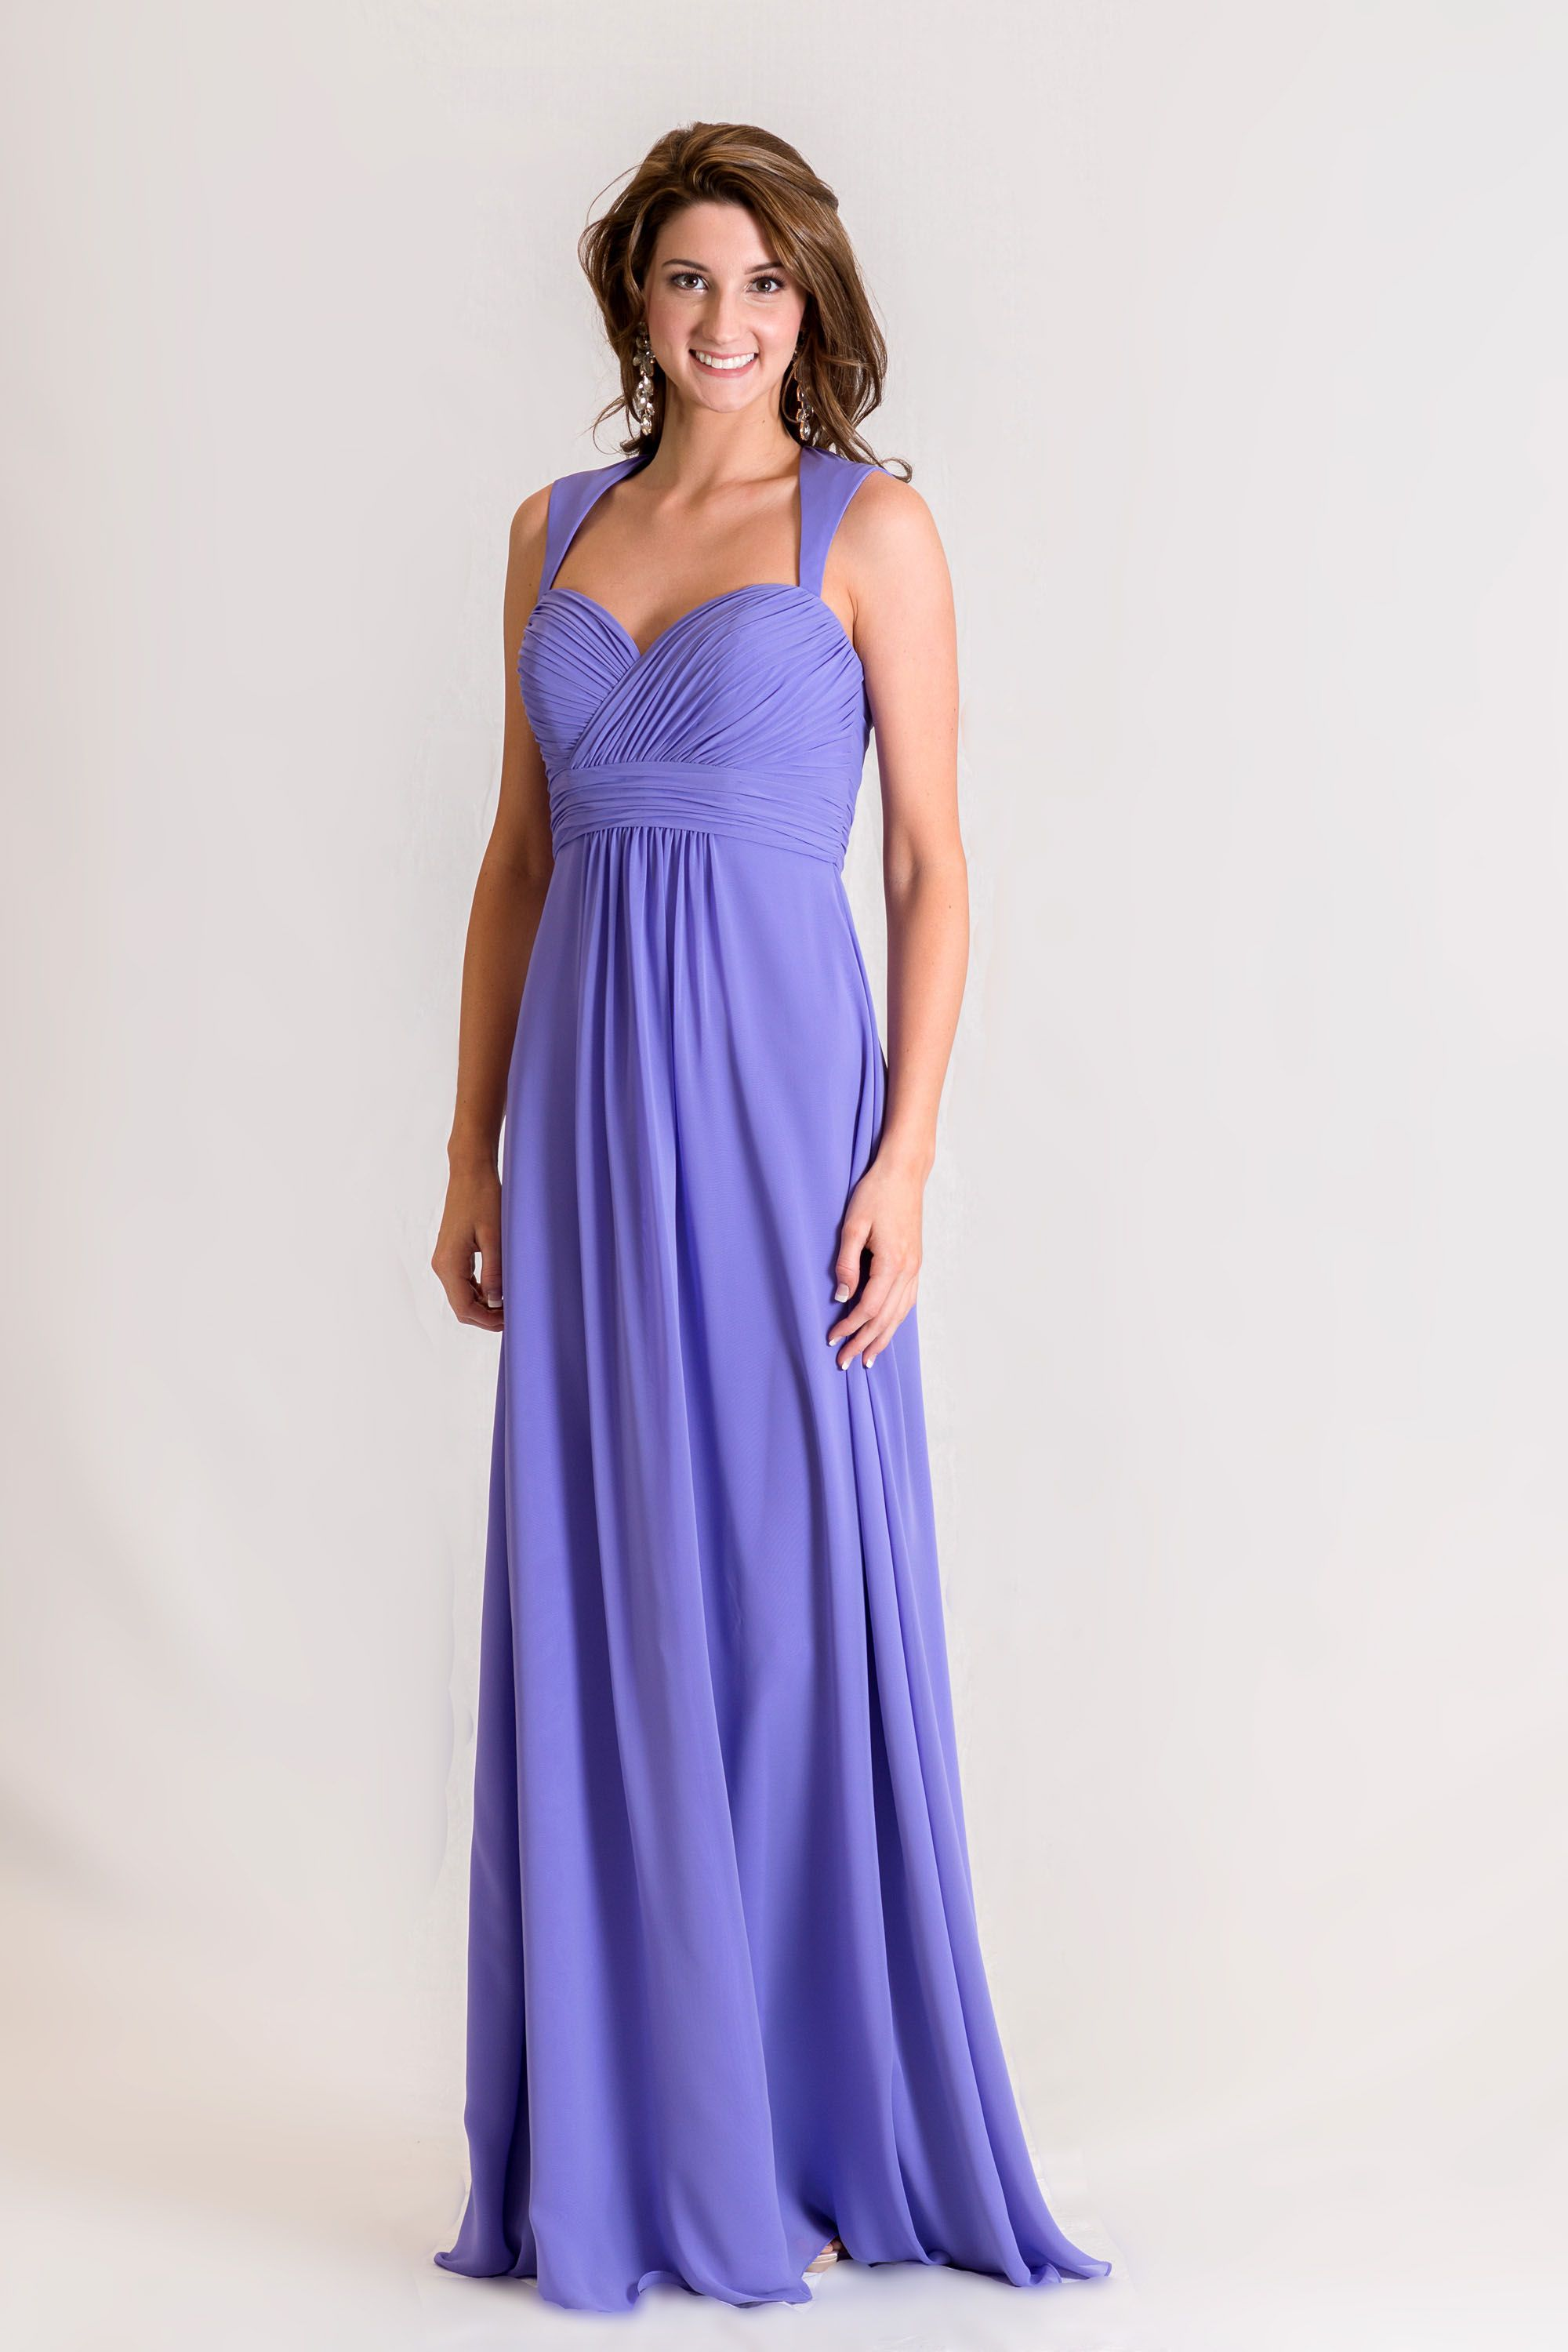 NEW Bridesmaid Dress from Kanali K Style Number 1664 #dressesbyrusso ...